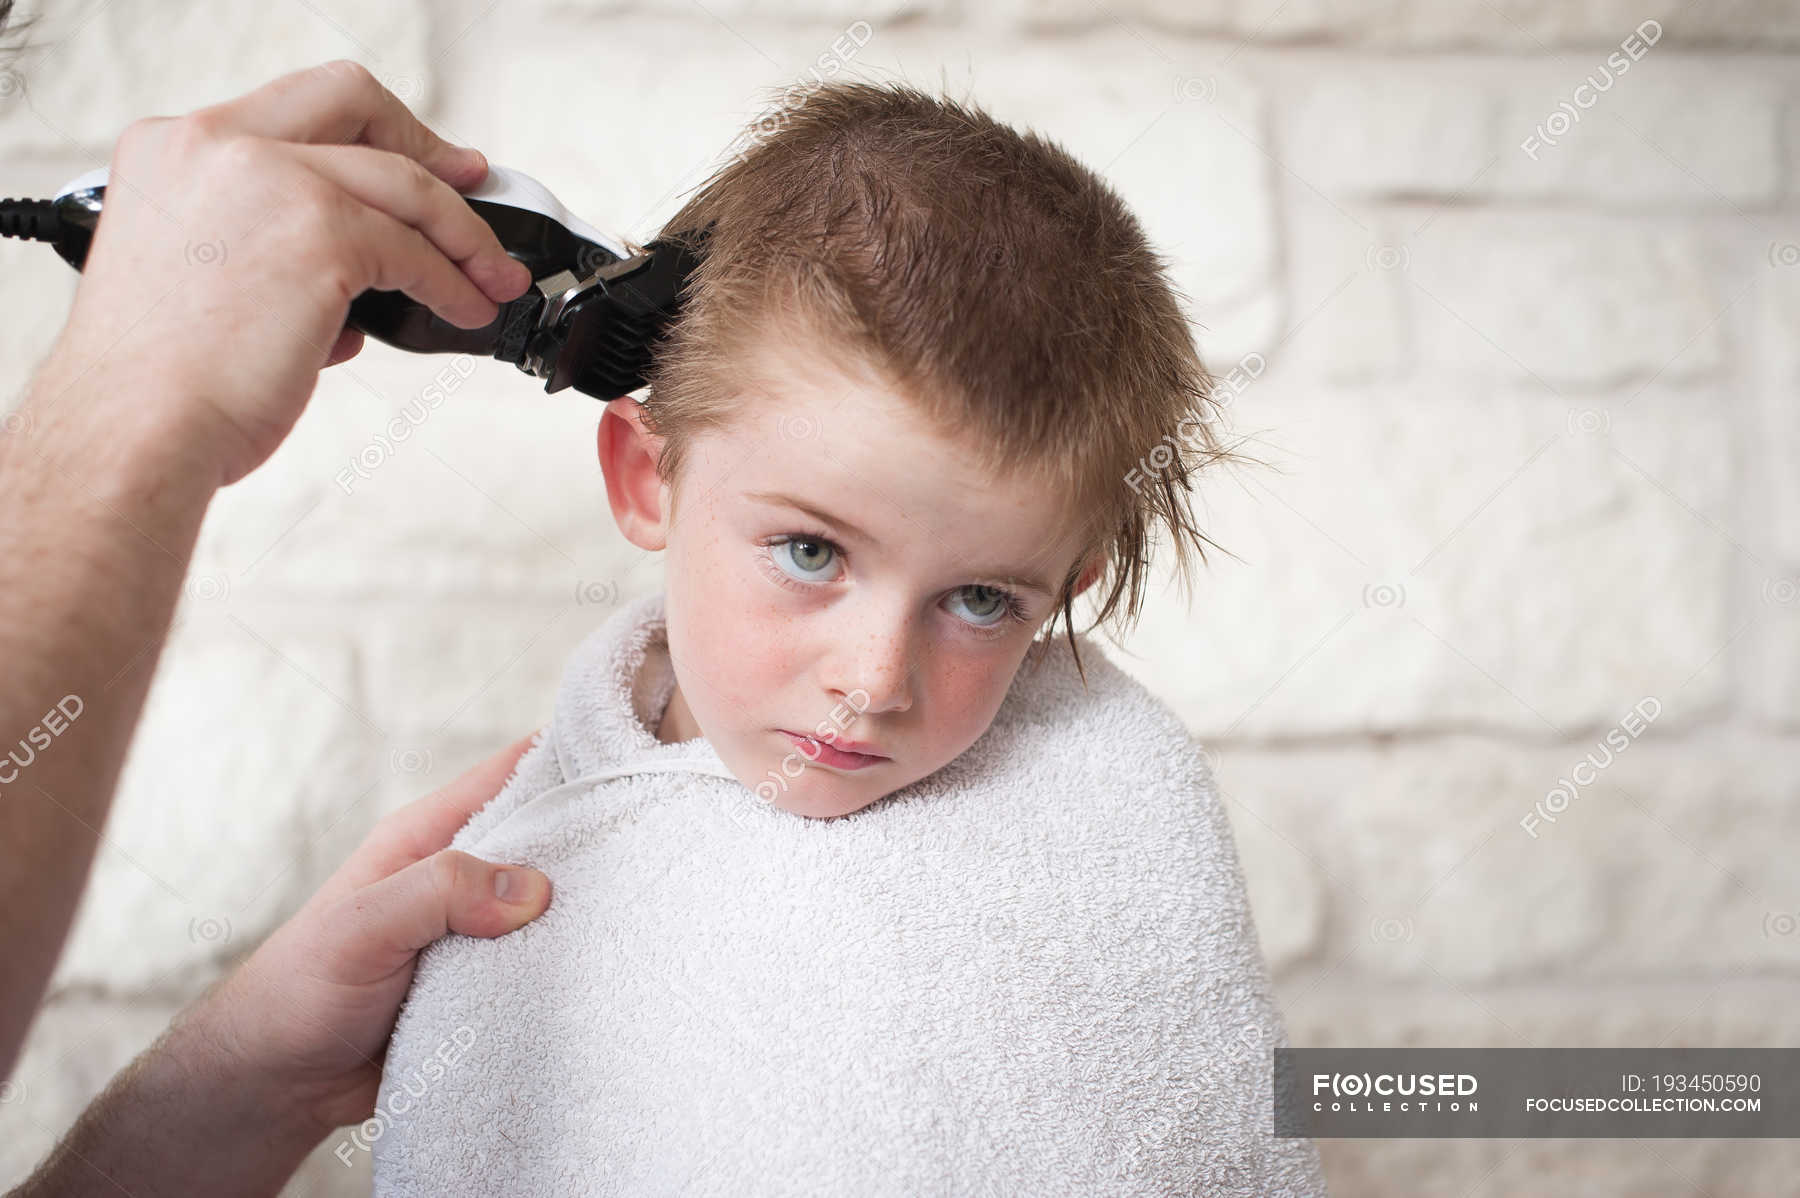 boy getting a buzz haircut by his father stock photo 193450590